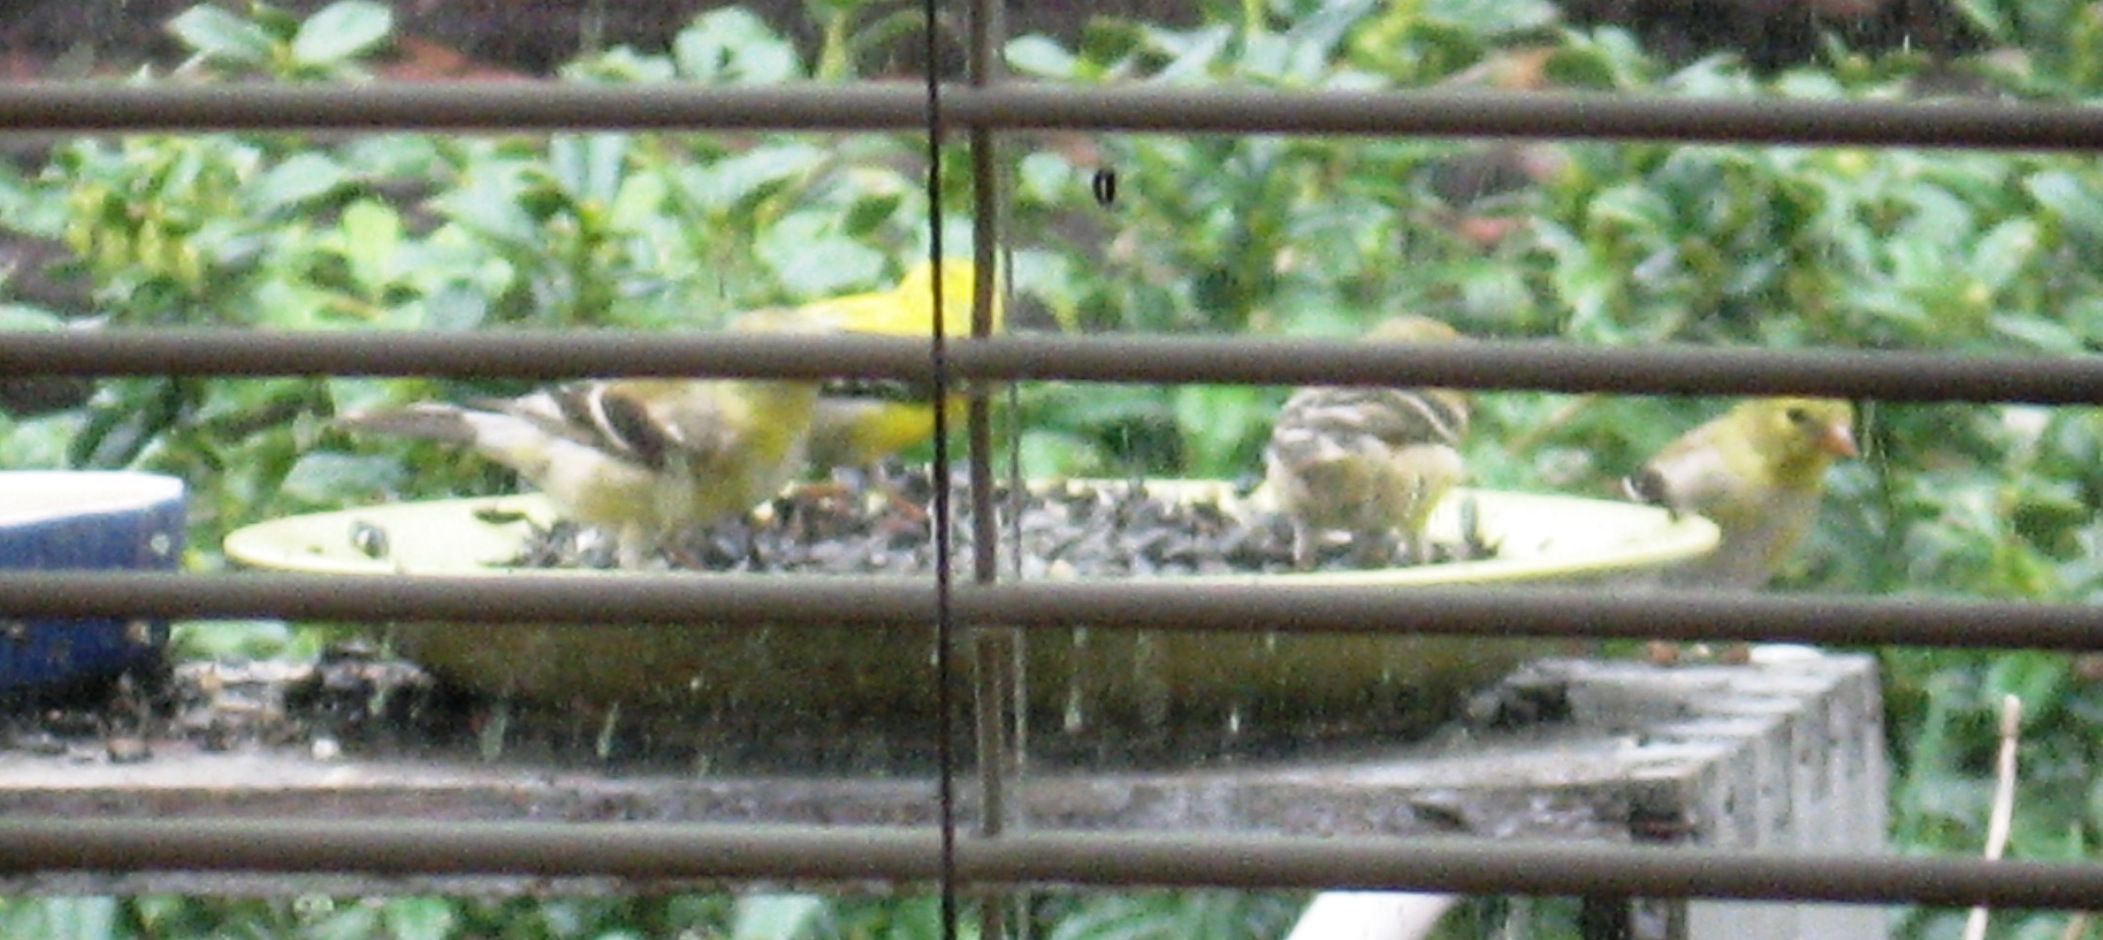 Goldfinches at dish feeder